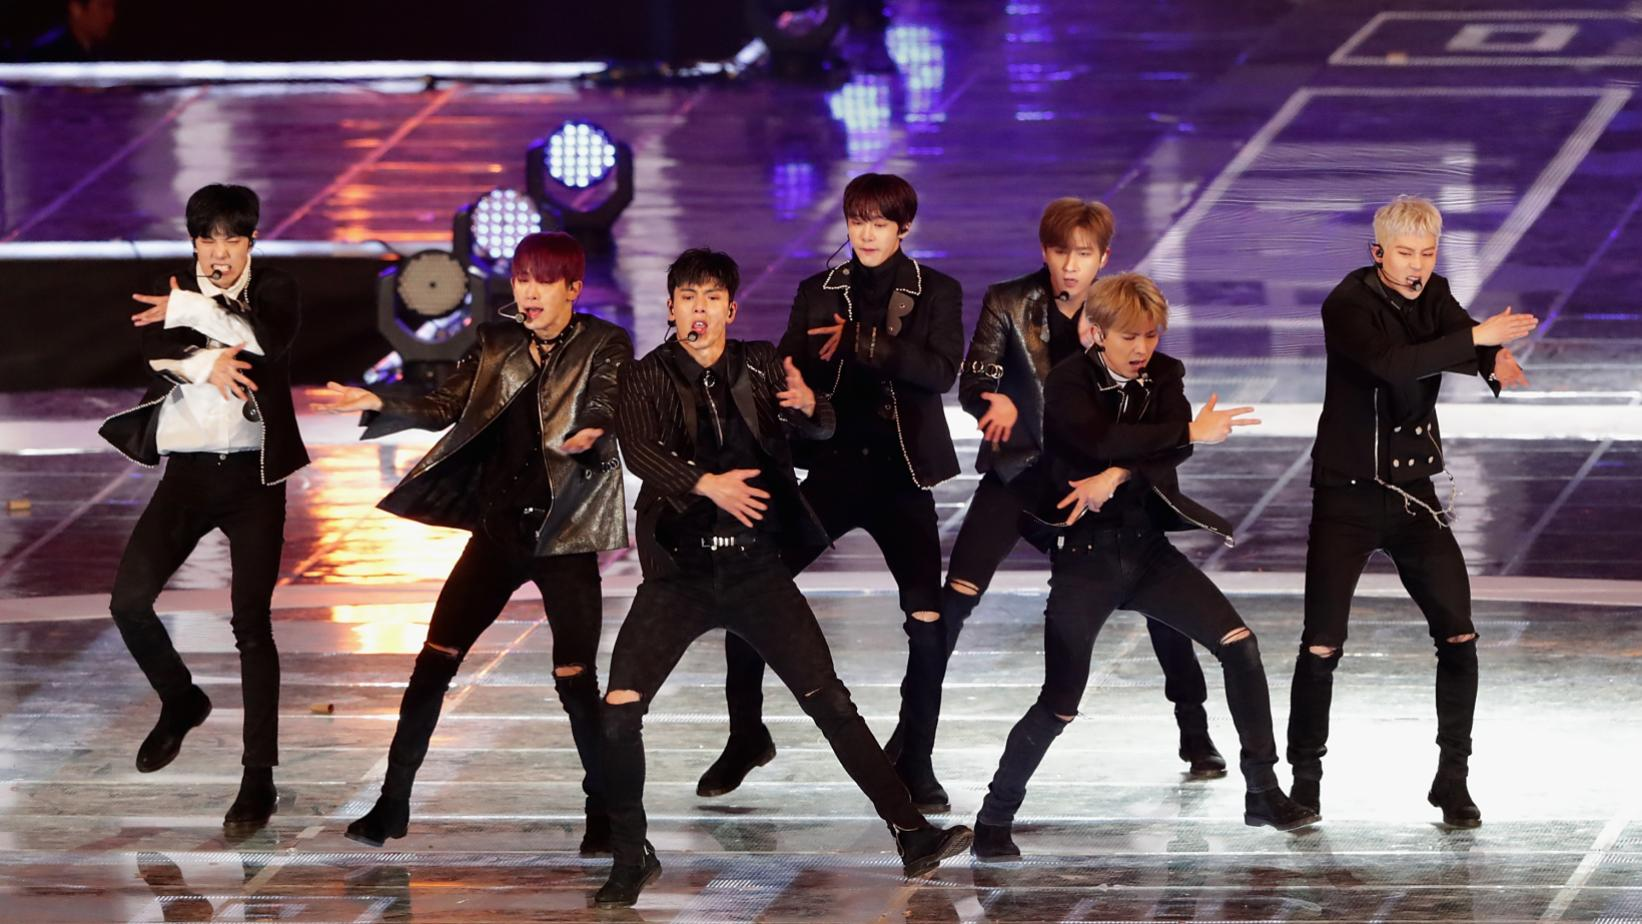 Monsta X photographed in 2017